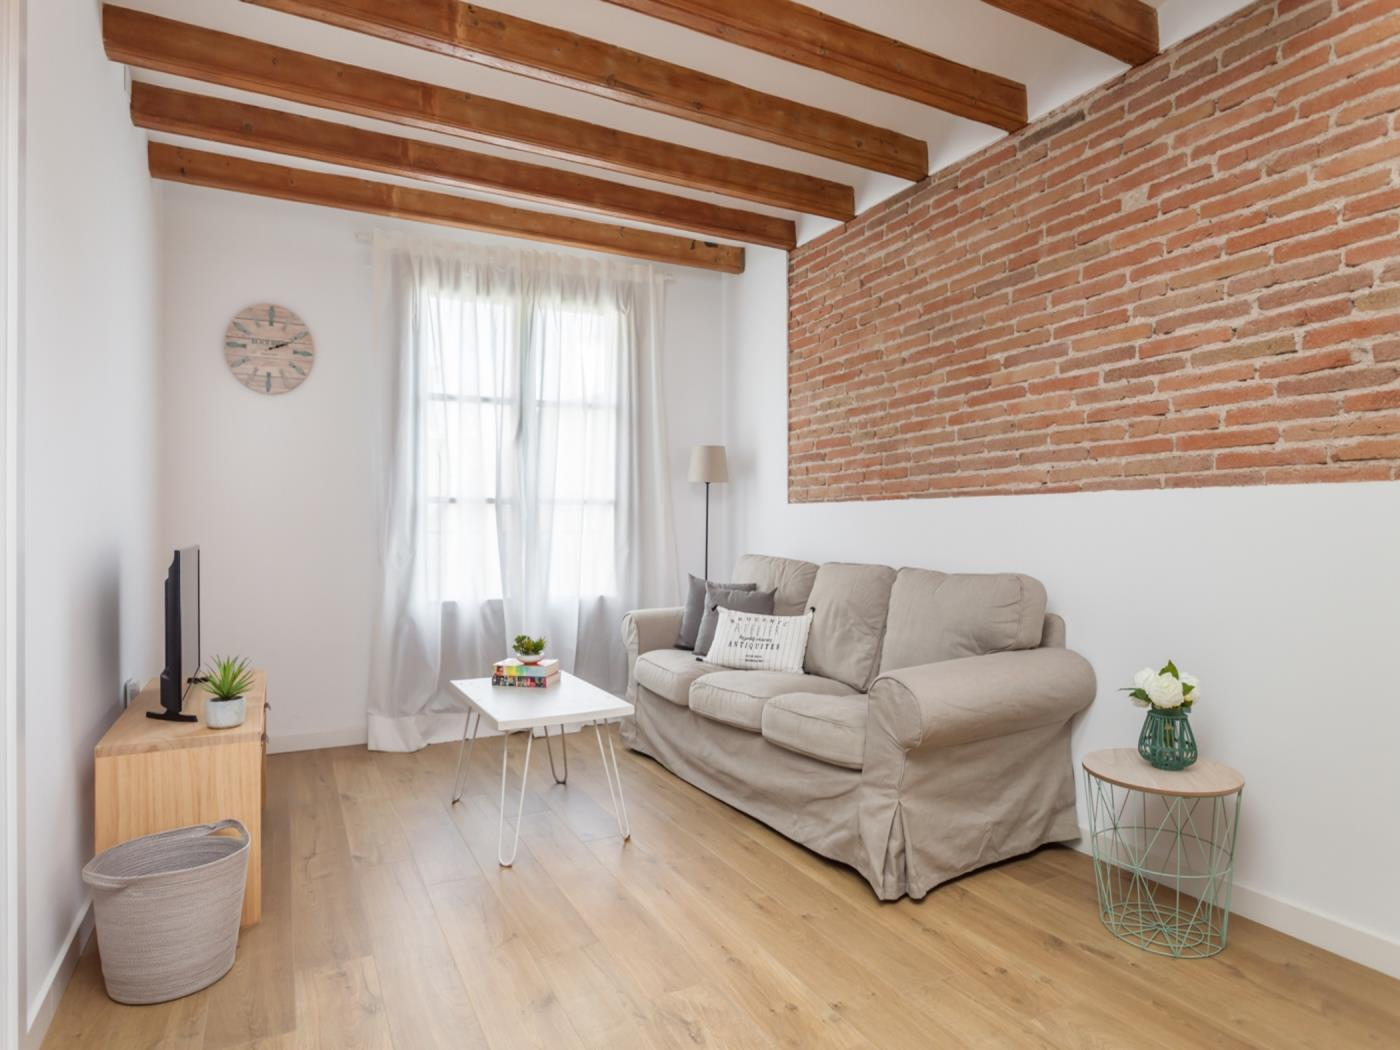 Cosmopolitan apartment in the city centre for long-term rentals for 4 - My Space Barcelona Apartments